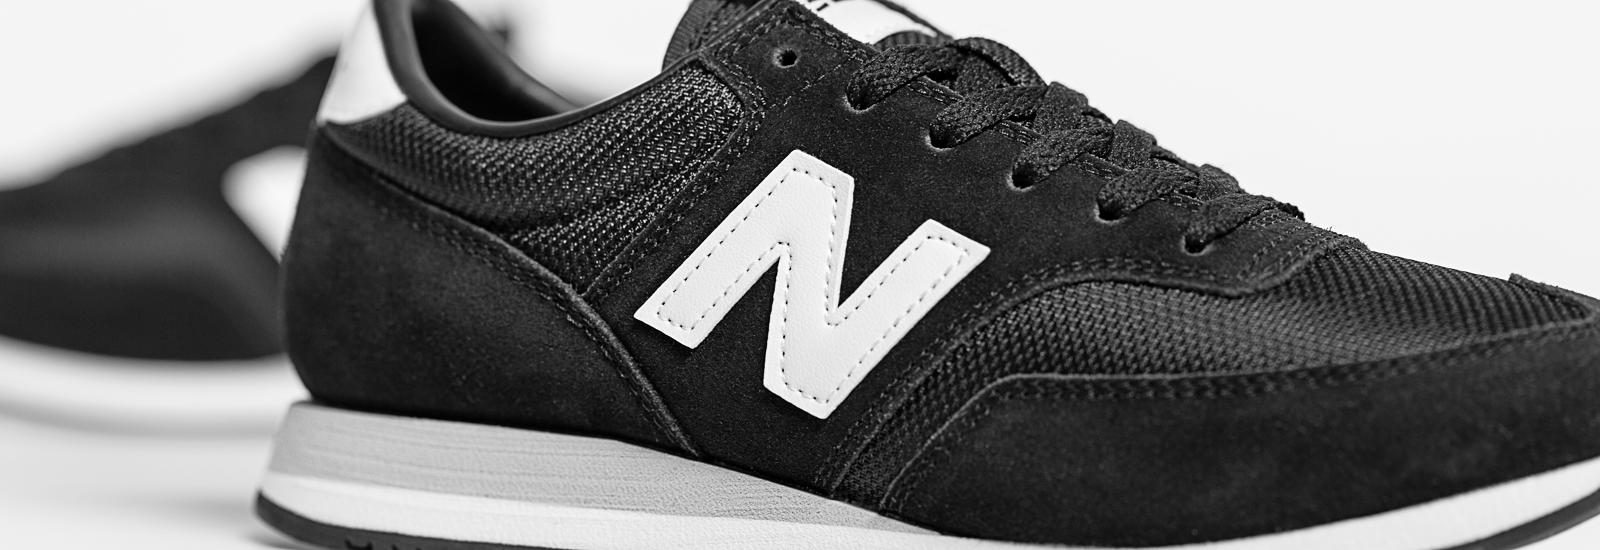 New balance recycled shoes - 620 New Balance